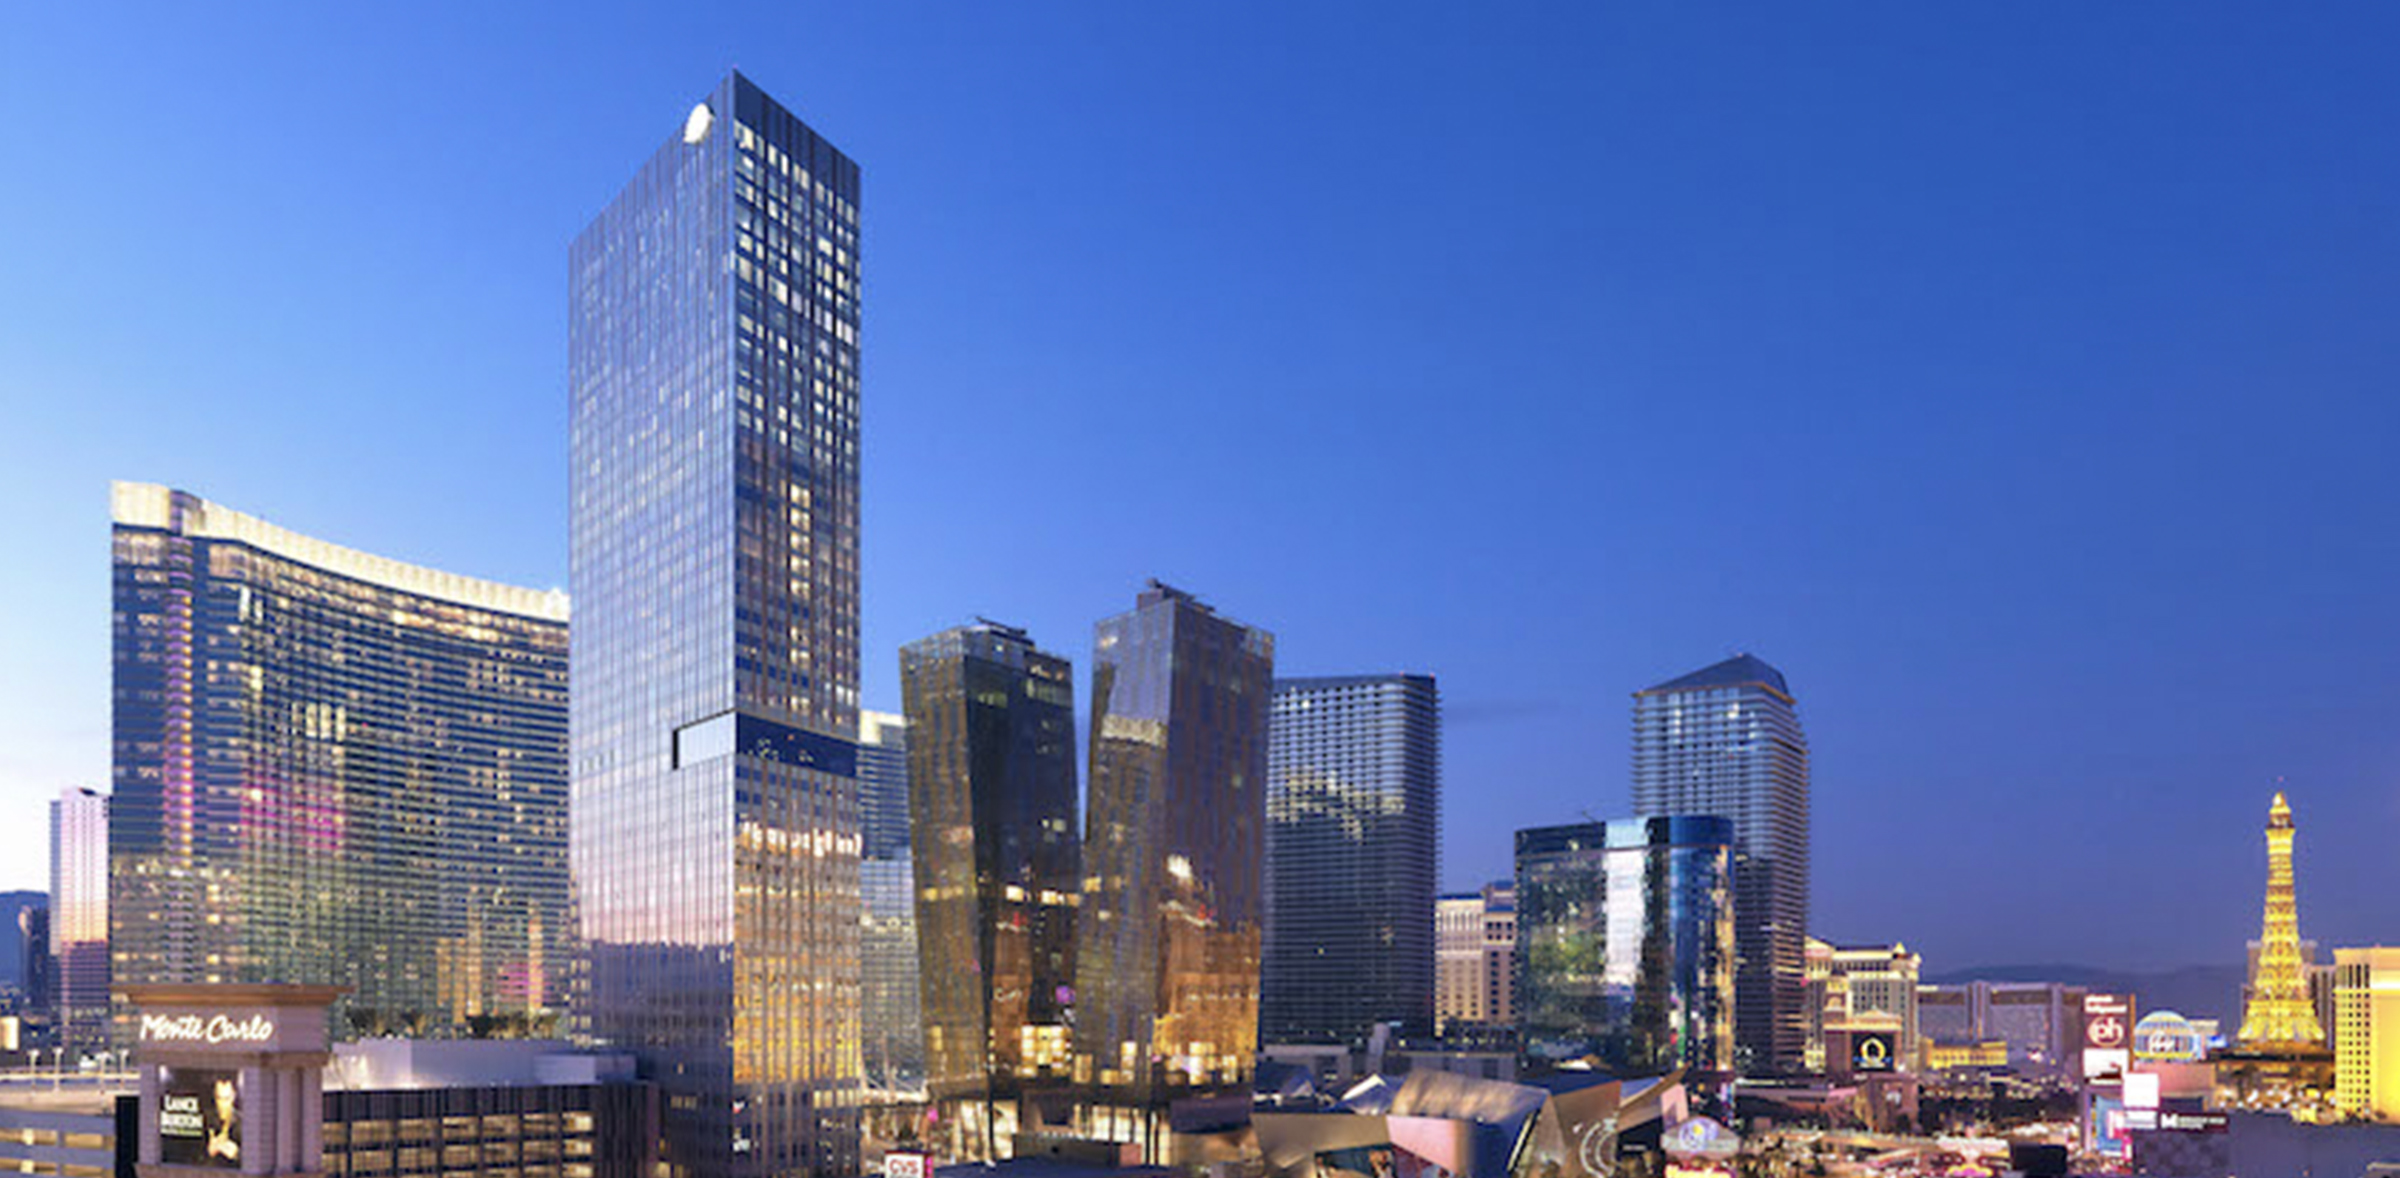 Hot List Top Pick for High Rises: Mandarin Oriental